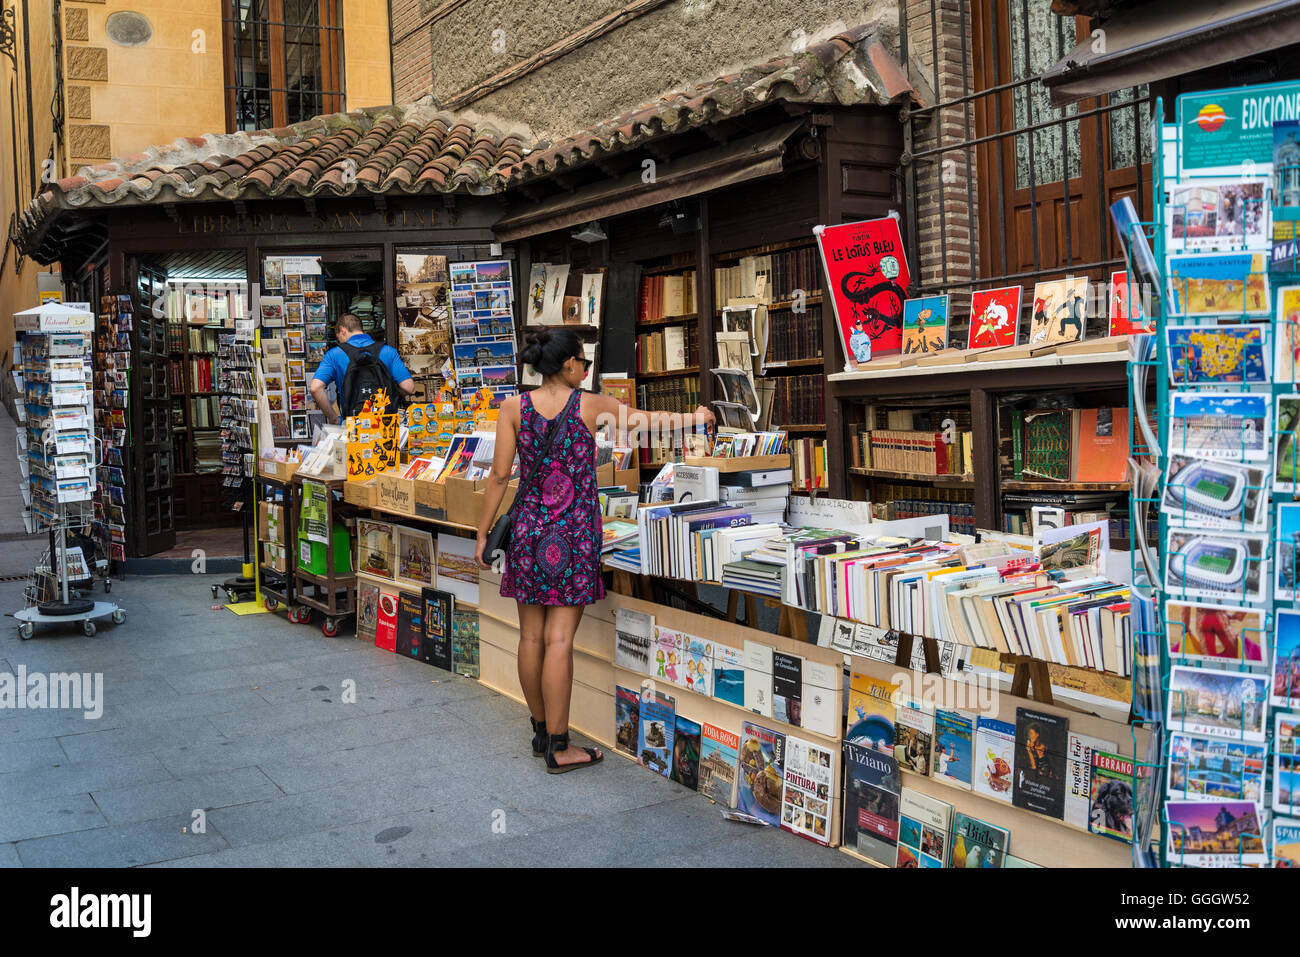 Woman browsing in secondhand bookshop in Pasadizo de San Gines, Calle de Arenal, Madrid, Spain - Stock Image